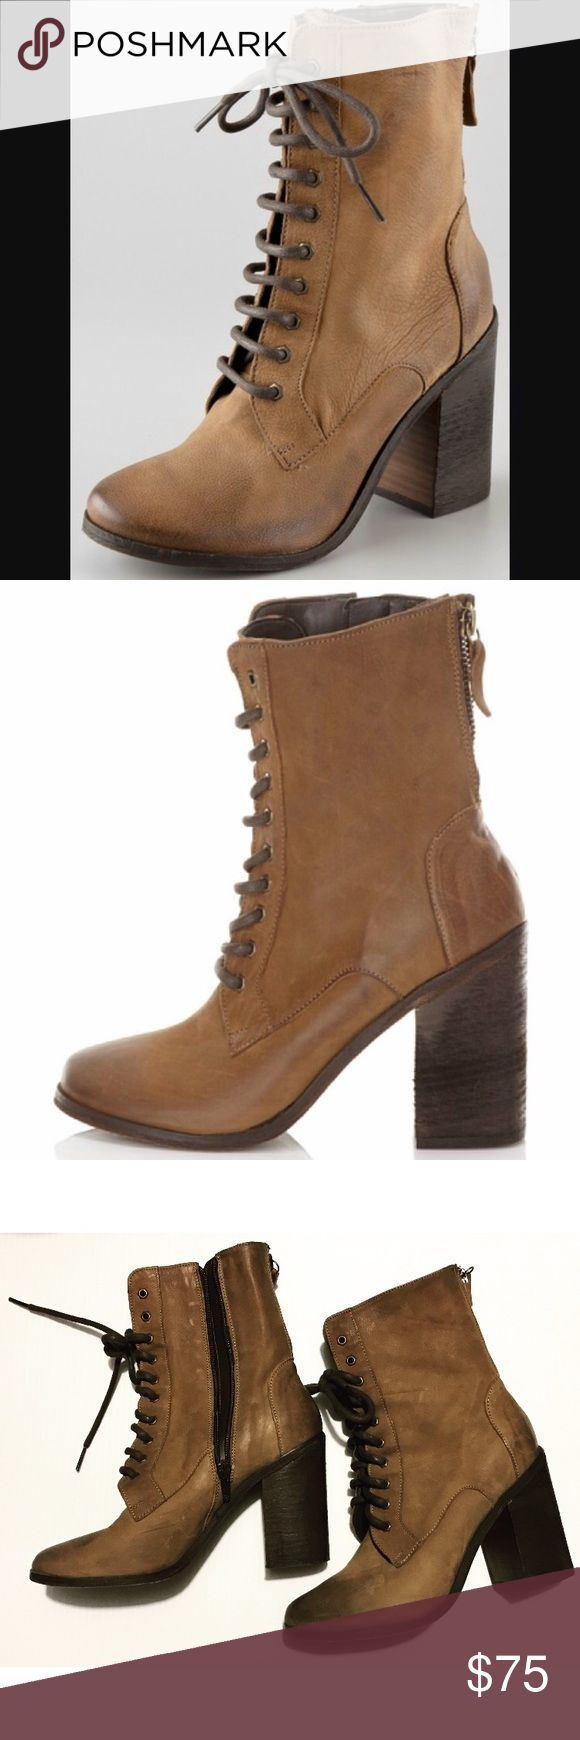 Boutique 9 Dustan Lace Up Combat Boots Sz 7M Boutique 9 Lace Up Stacked Heel Combat Boot Style name : Dustan Size 7m Color cognac  Made in Romania   Pre-owned / size 7 ( can fit 7.5) / from Nordstrom Boutique 9 Shoes Lace Up Boots